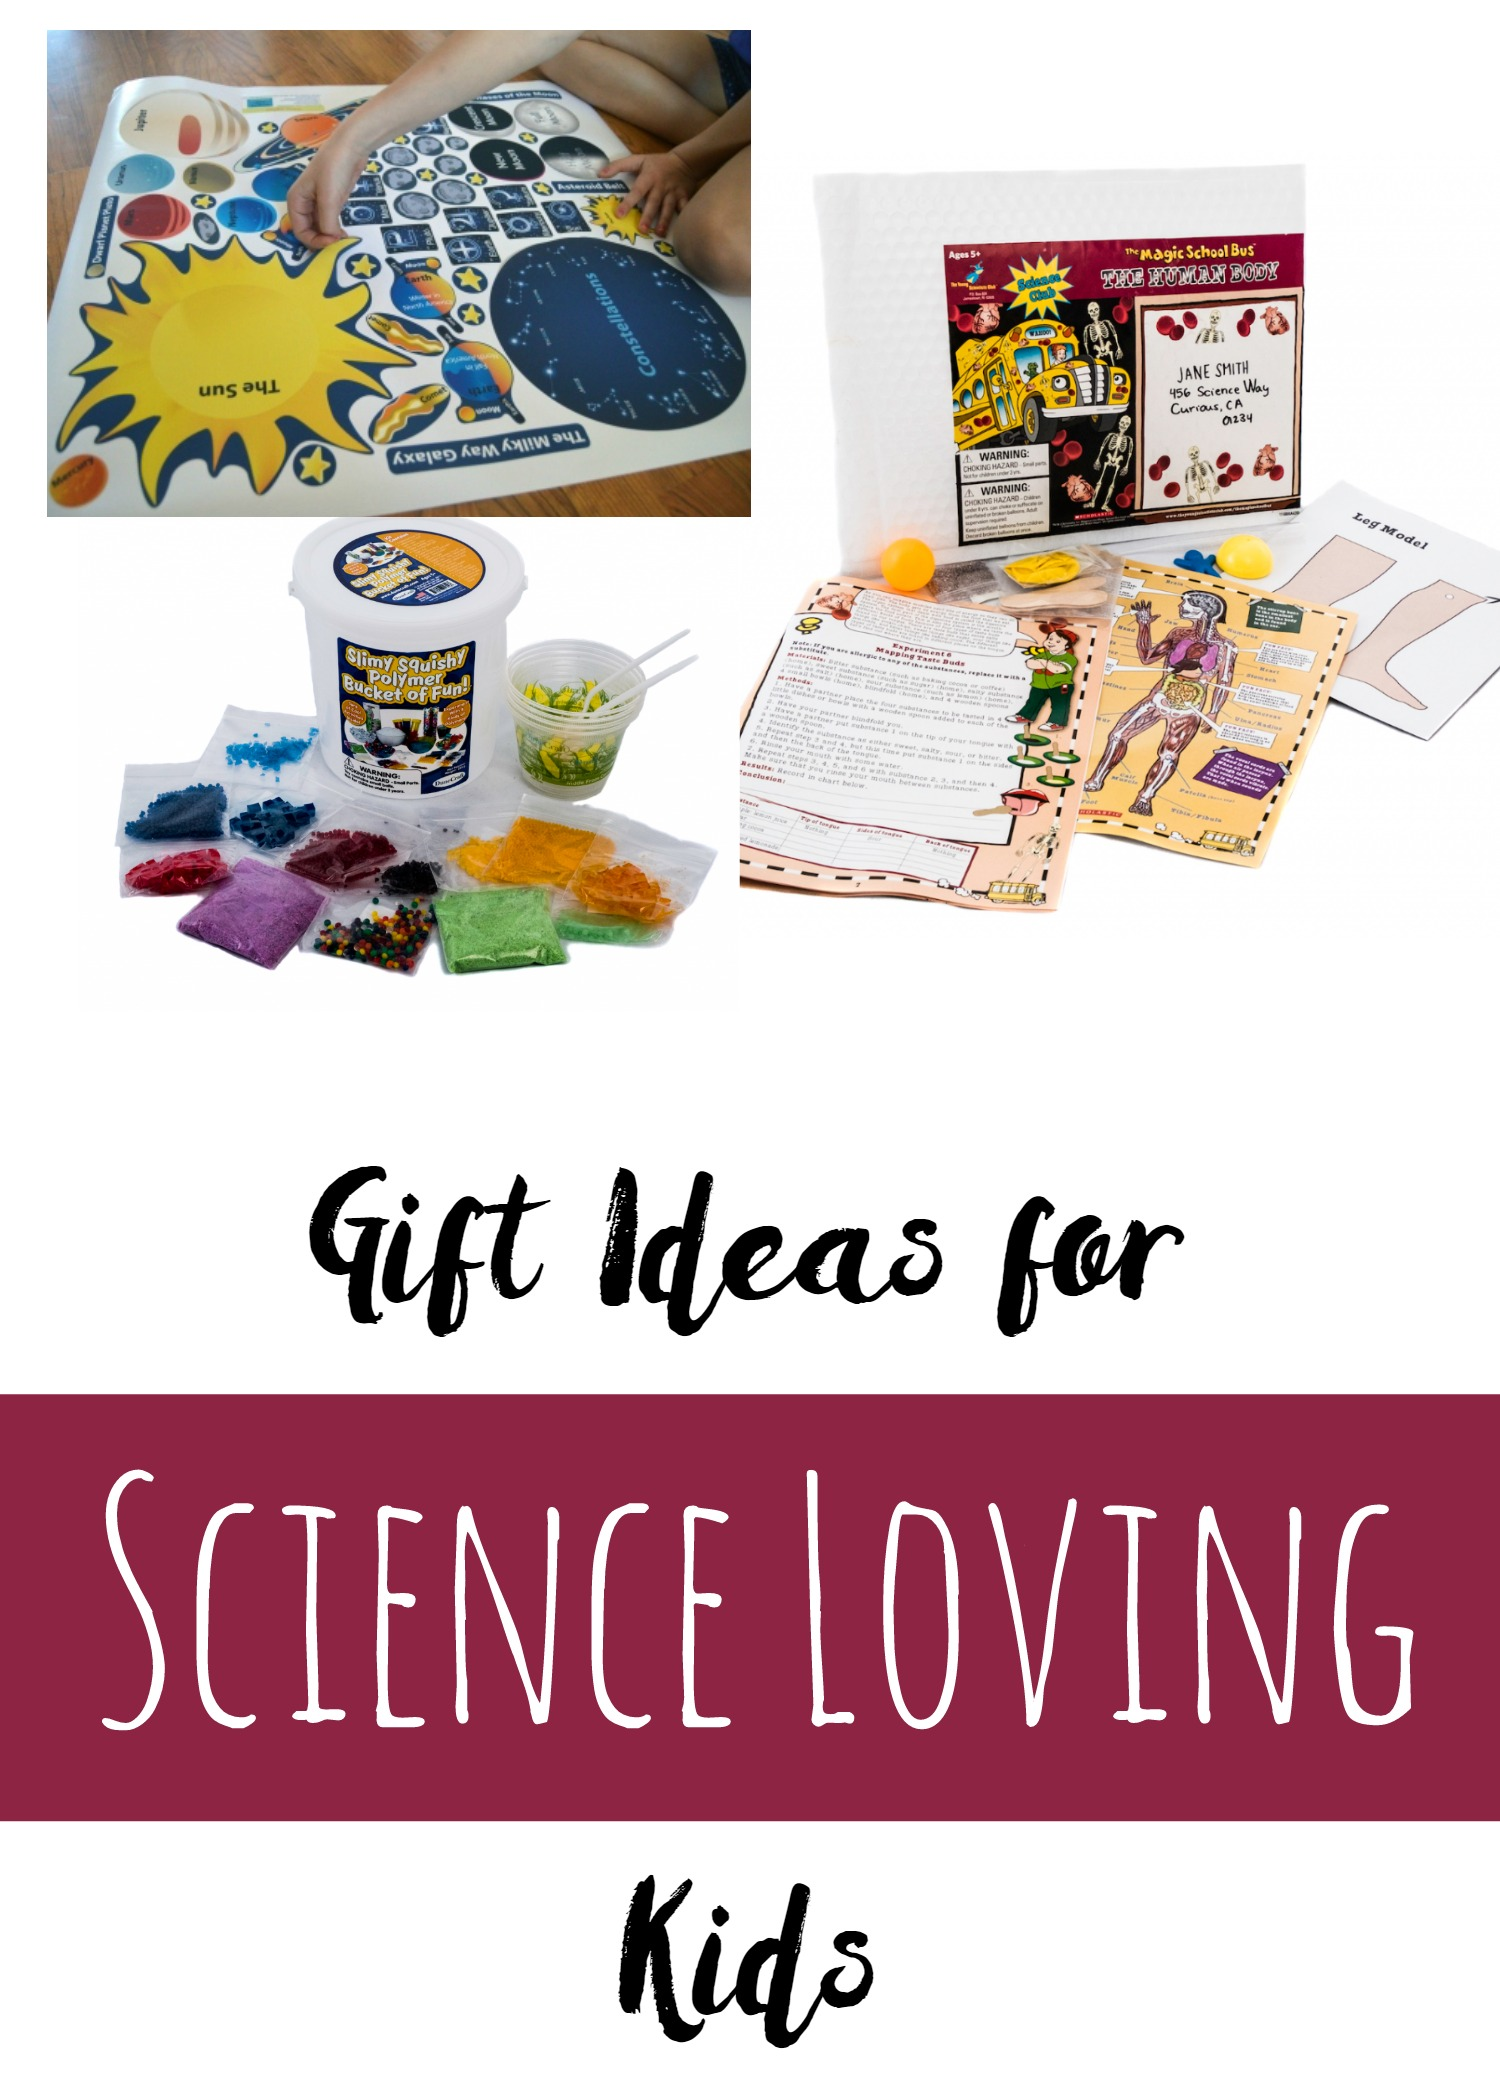 Educational Gift Ideas - gifts for science loving kids